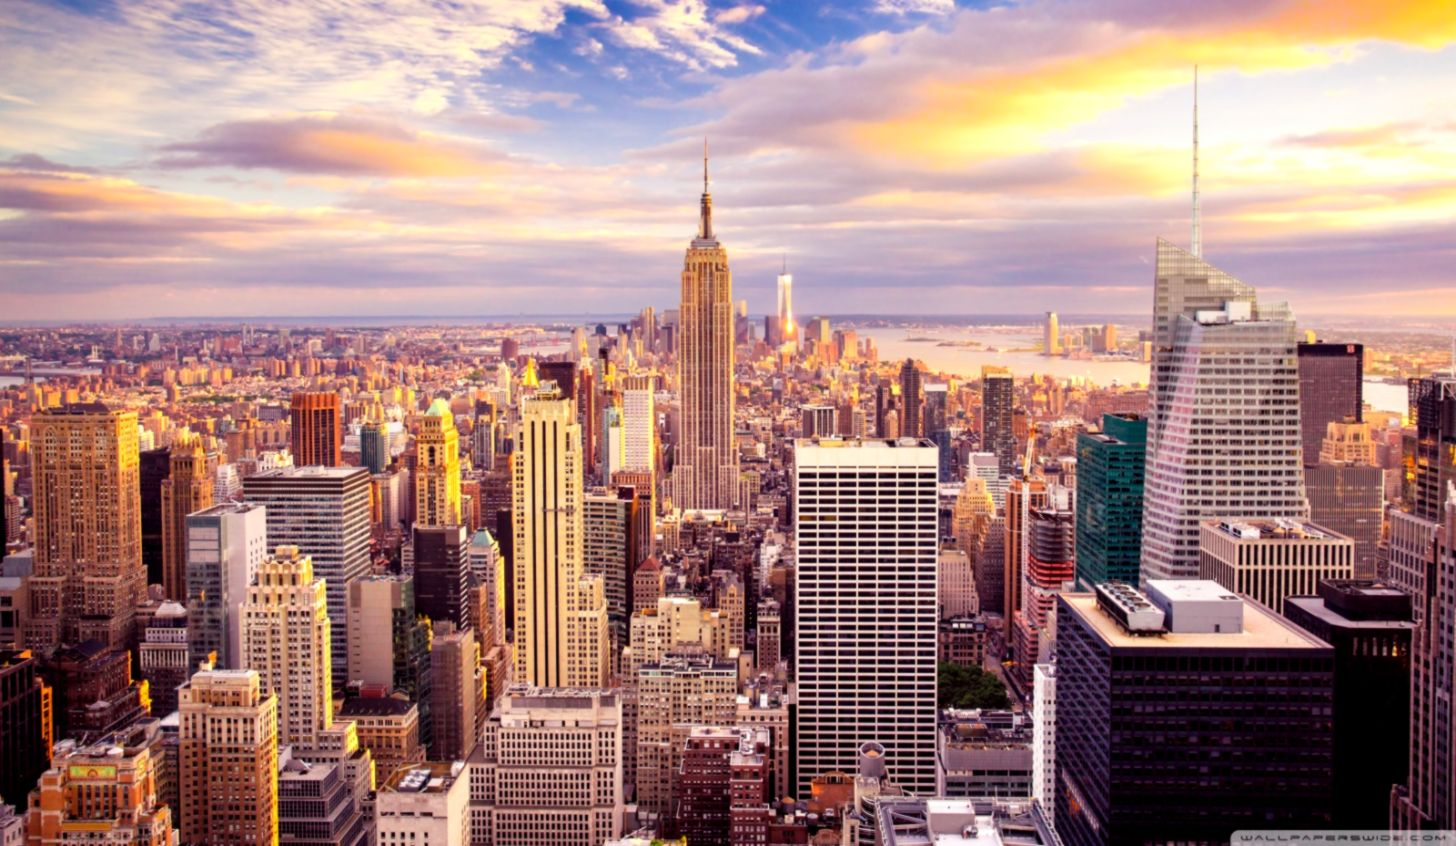 Buildings New York City Photo Hd Wallpaper Wallpapers Home